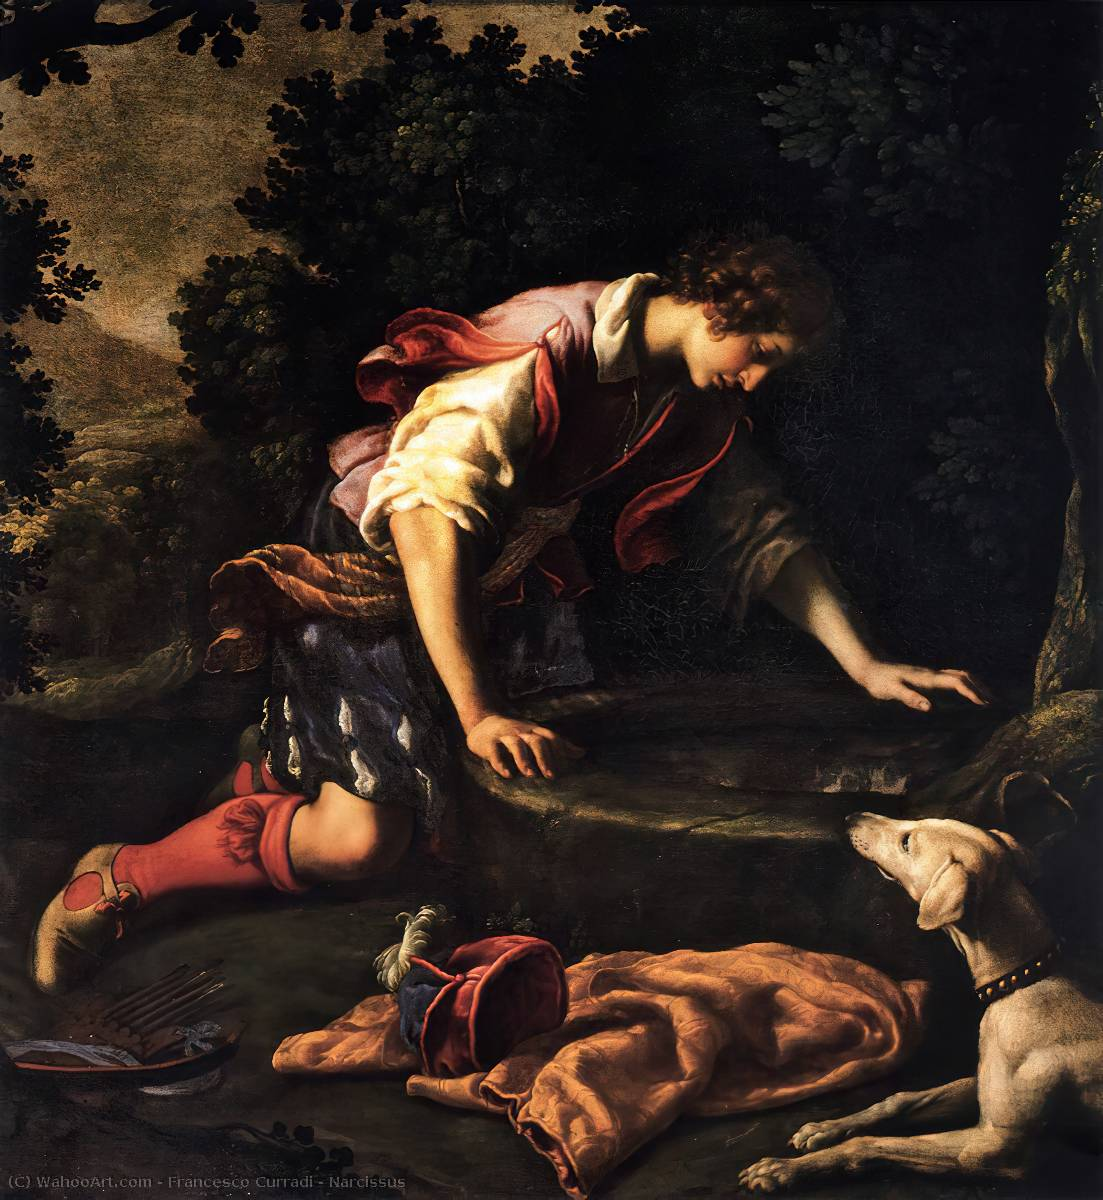 Нарцисс по Francesco Curradi (1570-1661, Italy)